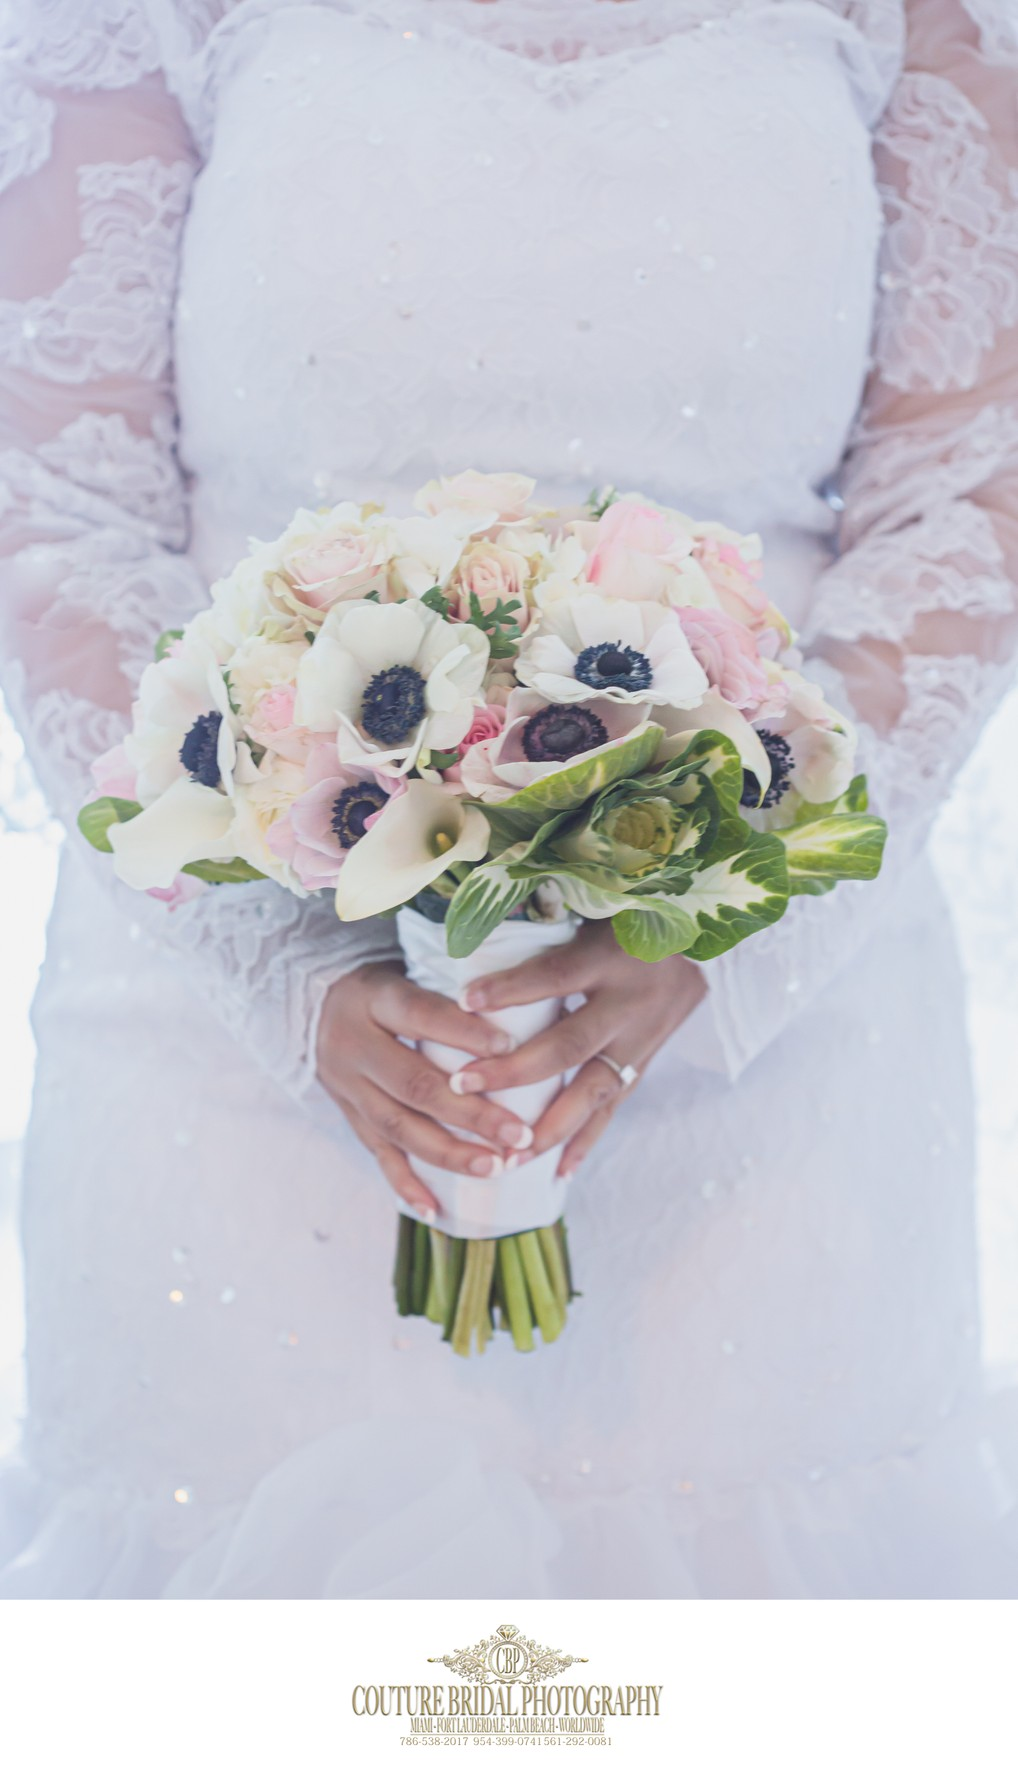 THE BRIDES BOUQUET AND DETAIL WEDDING PHOTOGRAPHY SHOTS